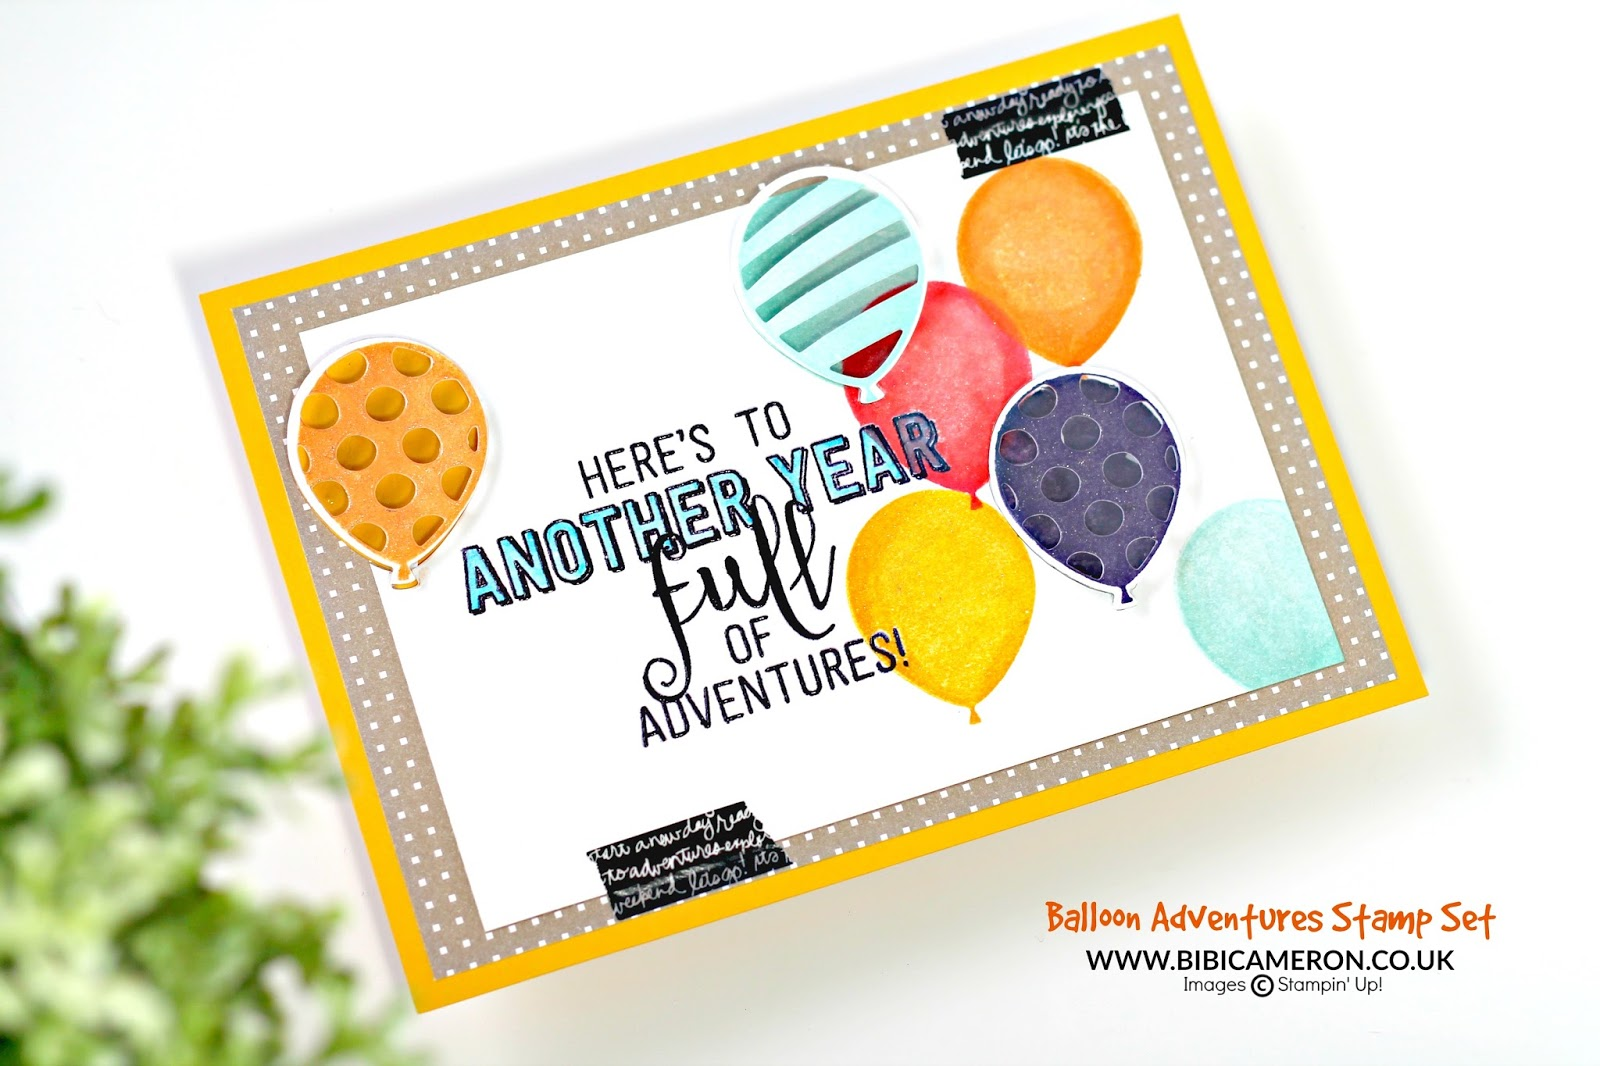 Balloon Adventures Stamp Set by Stampin' Up! GDP063